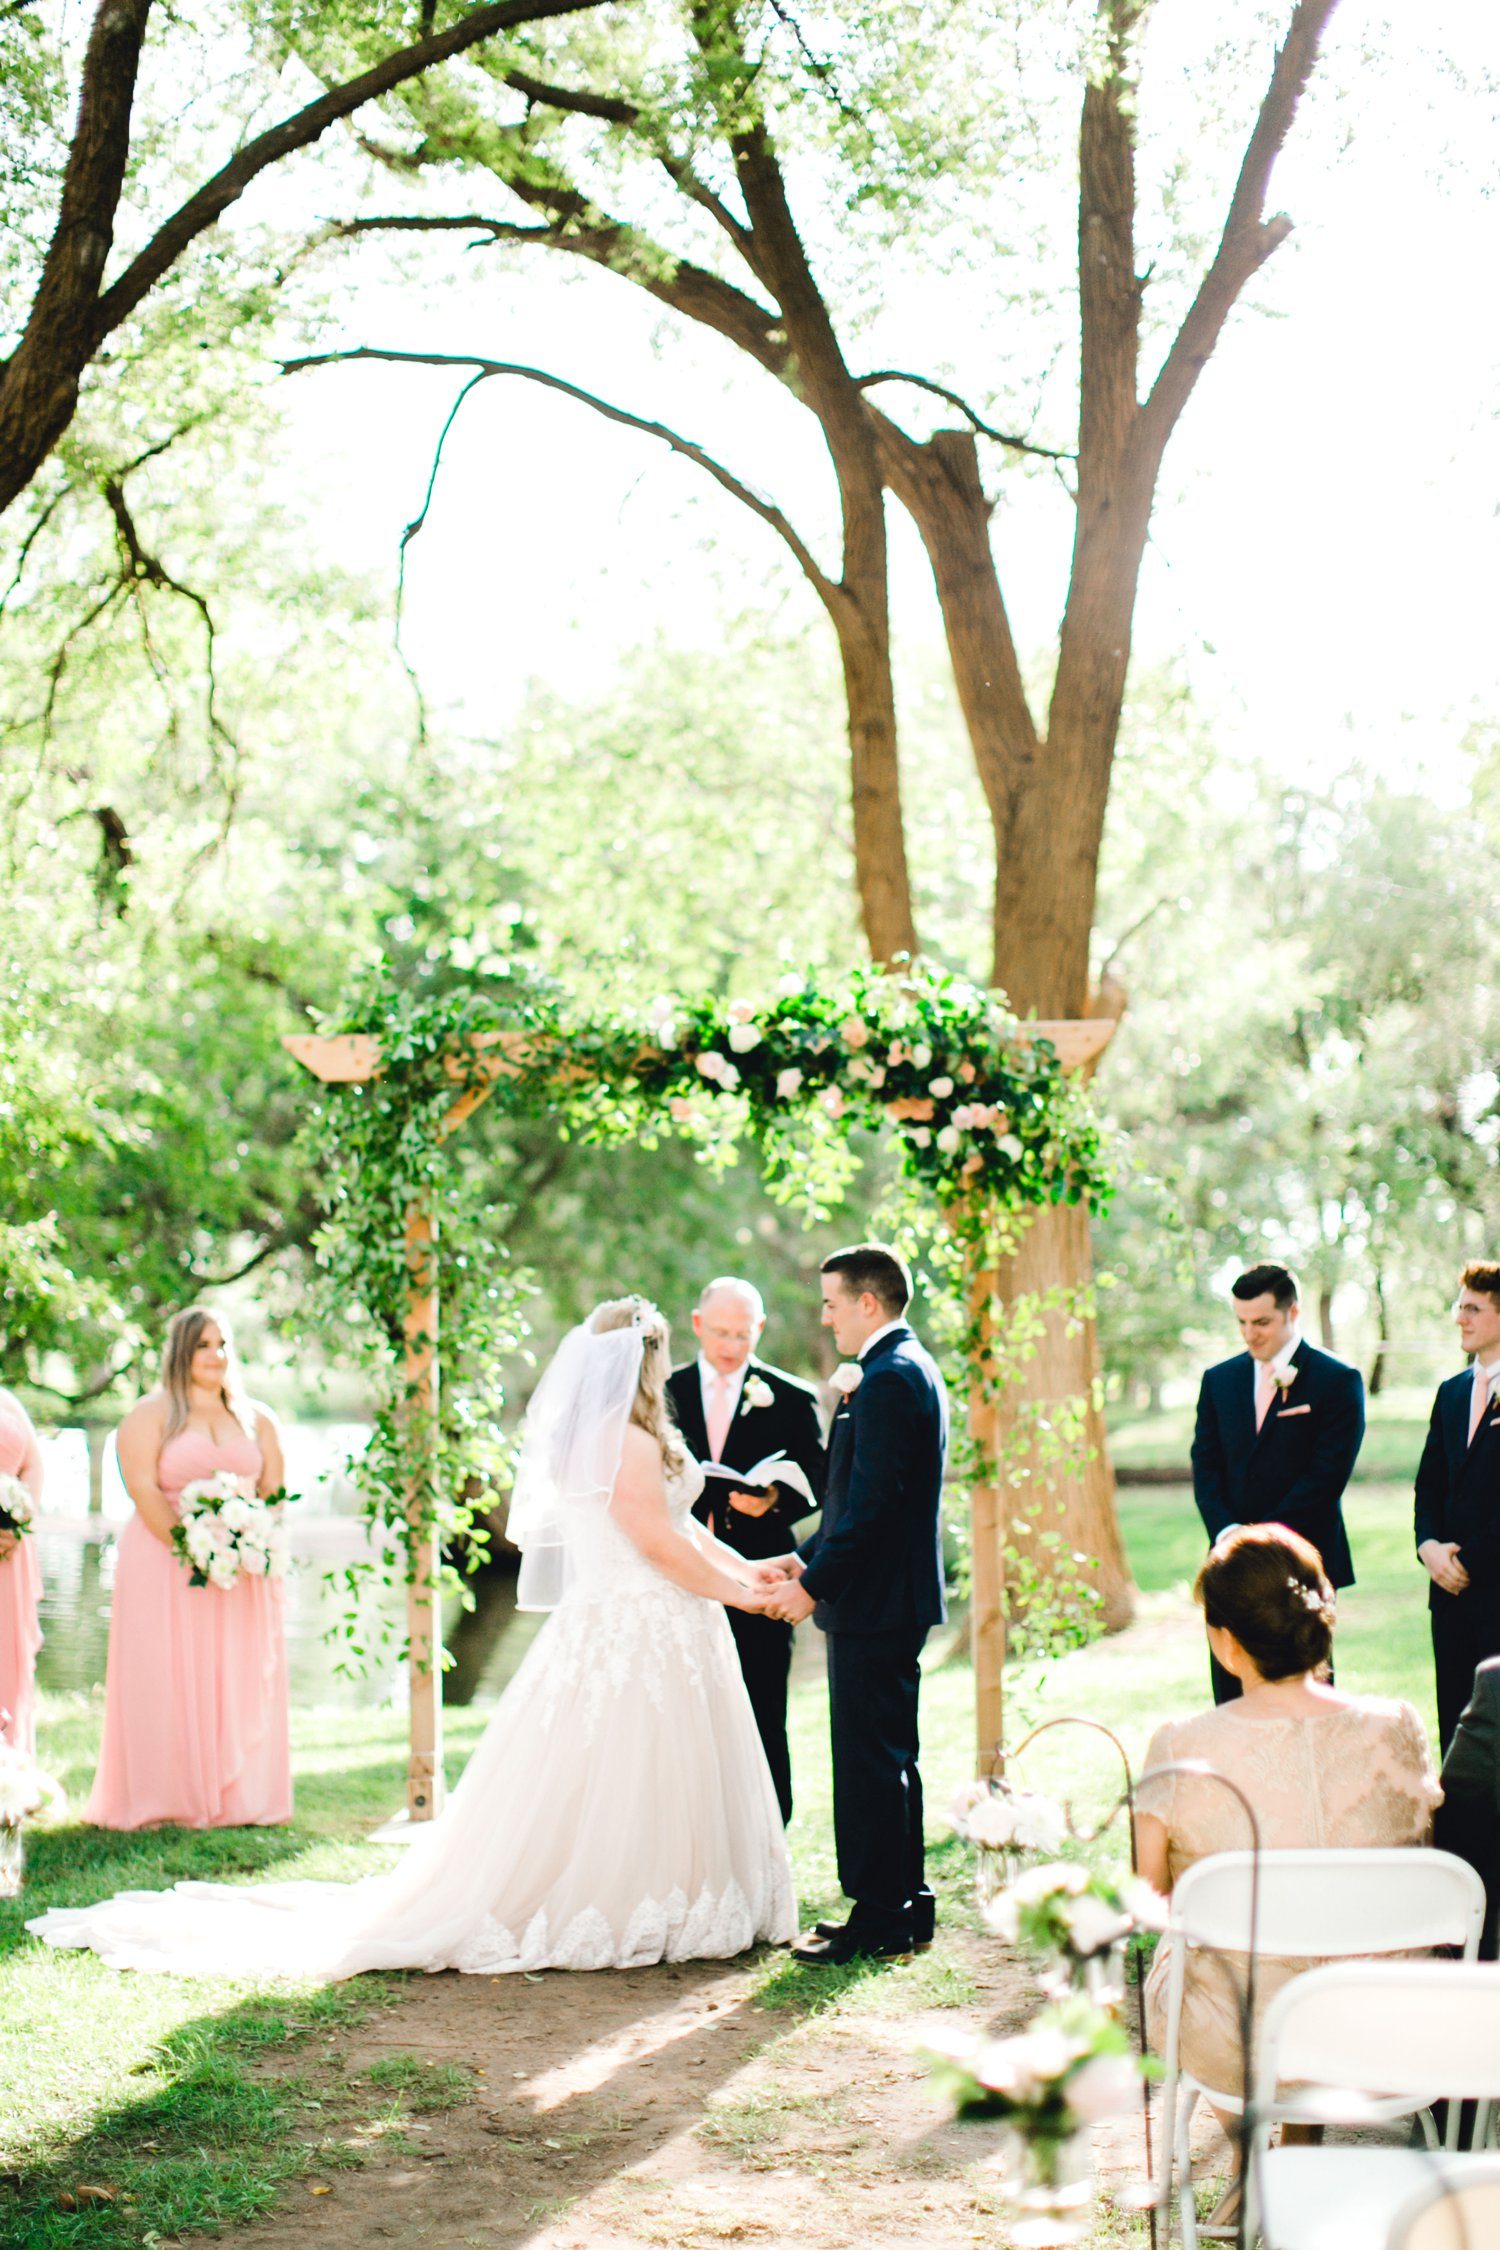 SARAH_AND_GEOFFREY_SHARP_SPIRIT_RANCH_WEDDING_ALLEEJ_LUBBOCK_TX_0075.jpg